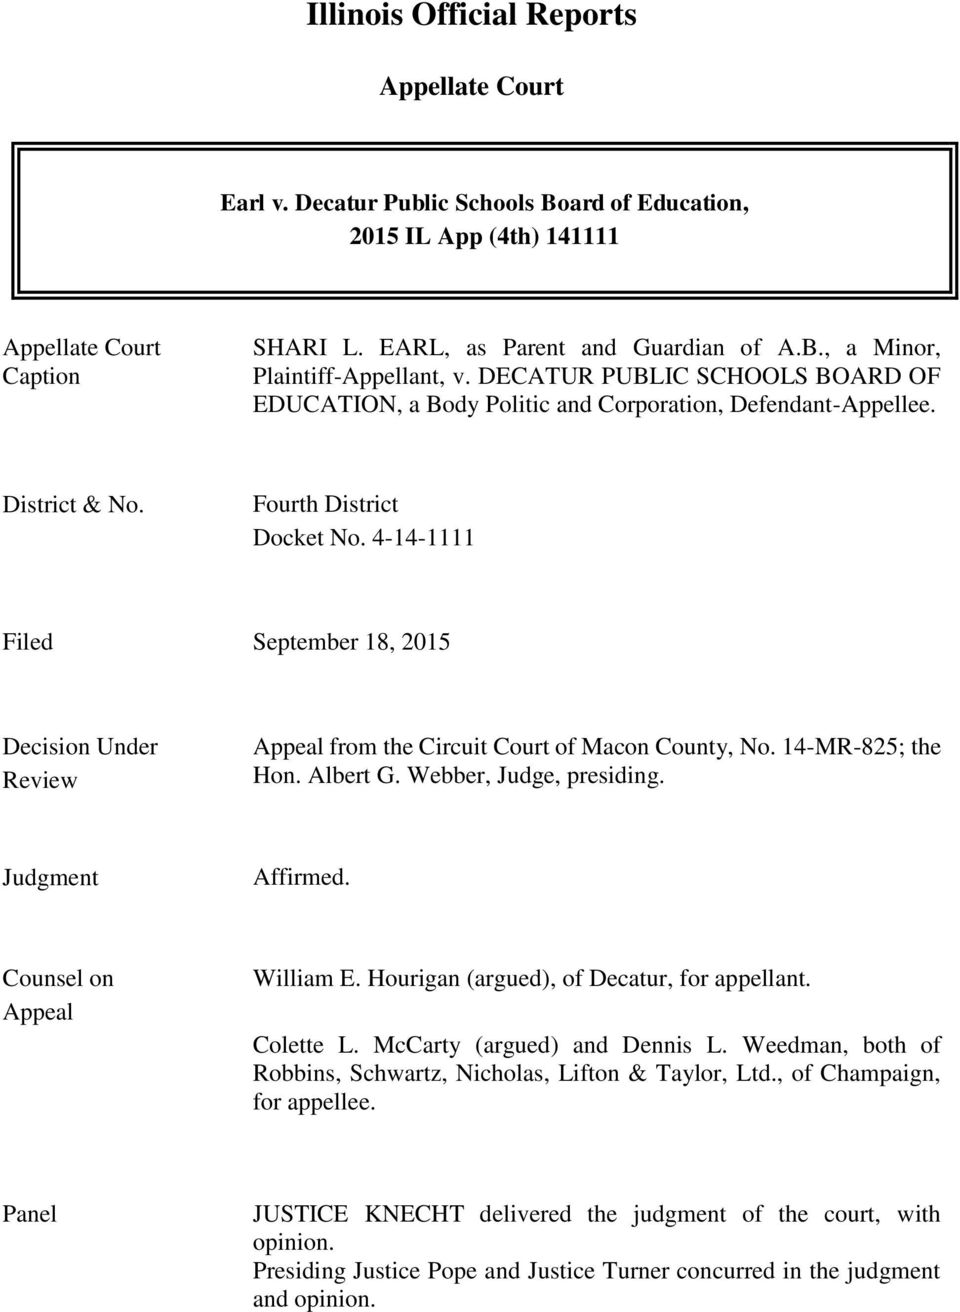 4-14-1111 Filed September 18, 2015 Decision Under Review Appeal from the Circuit Court of Macon County, No. 14-MR-825; the Hon. Albert G. Webber, Judge, presiding. Judgment Affirmed.